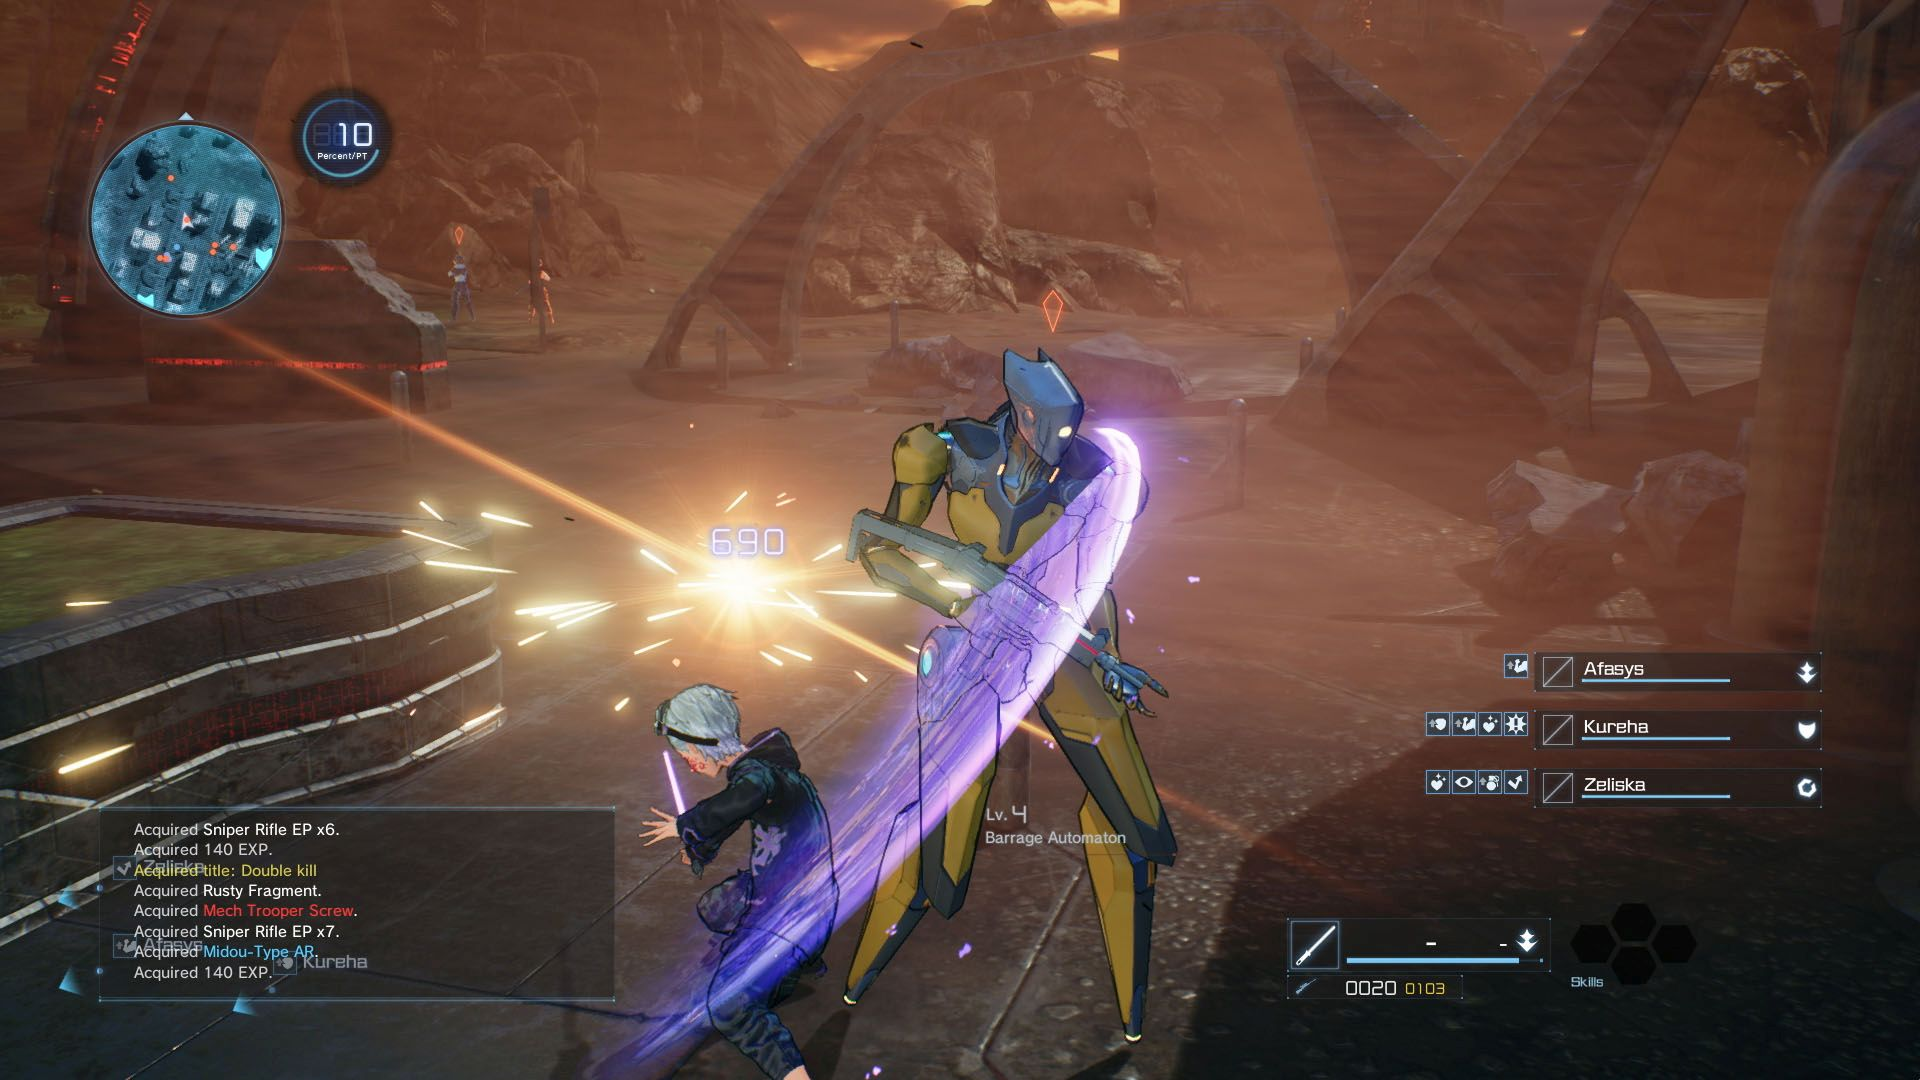 sword-art-online-fatal-bullet-review-ps4-1.jpg